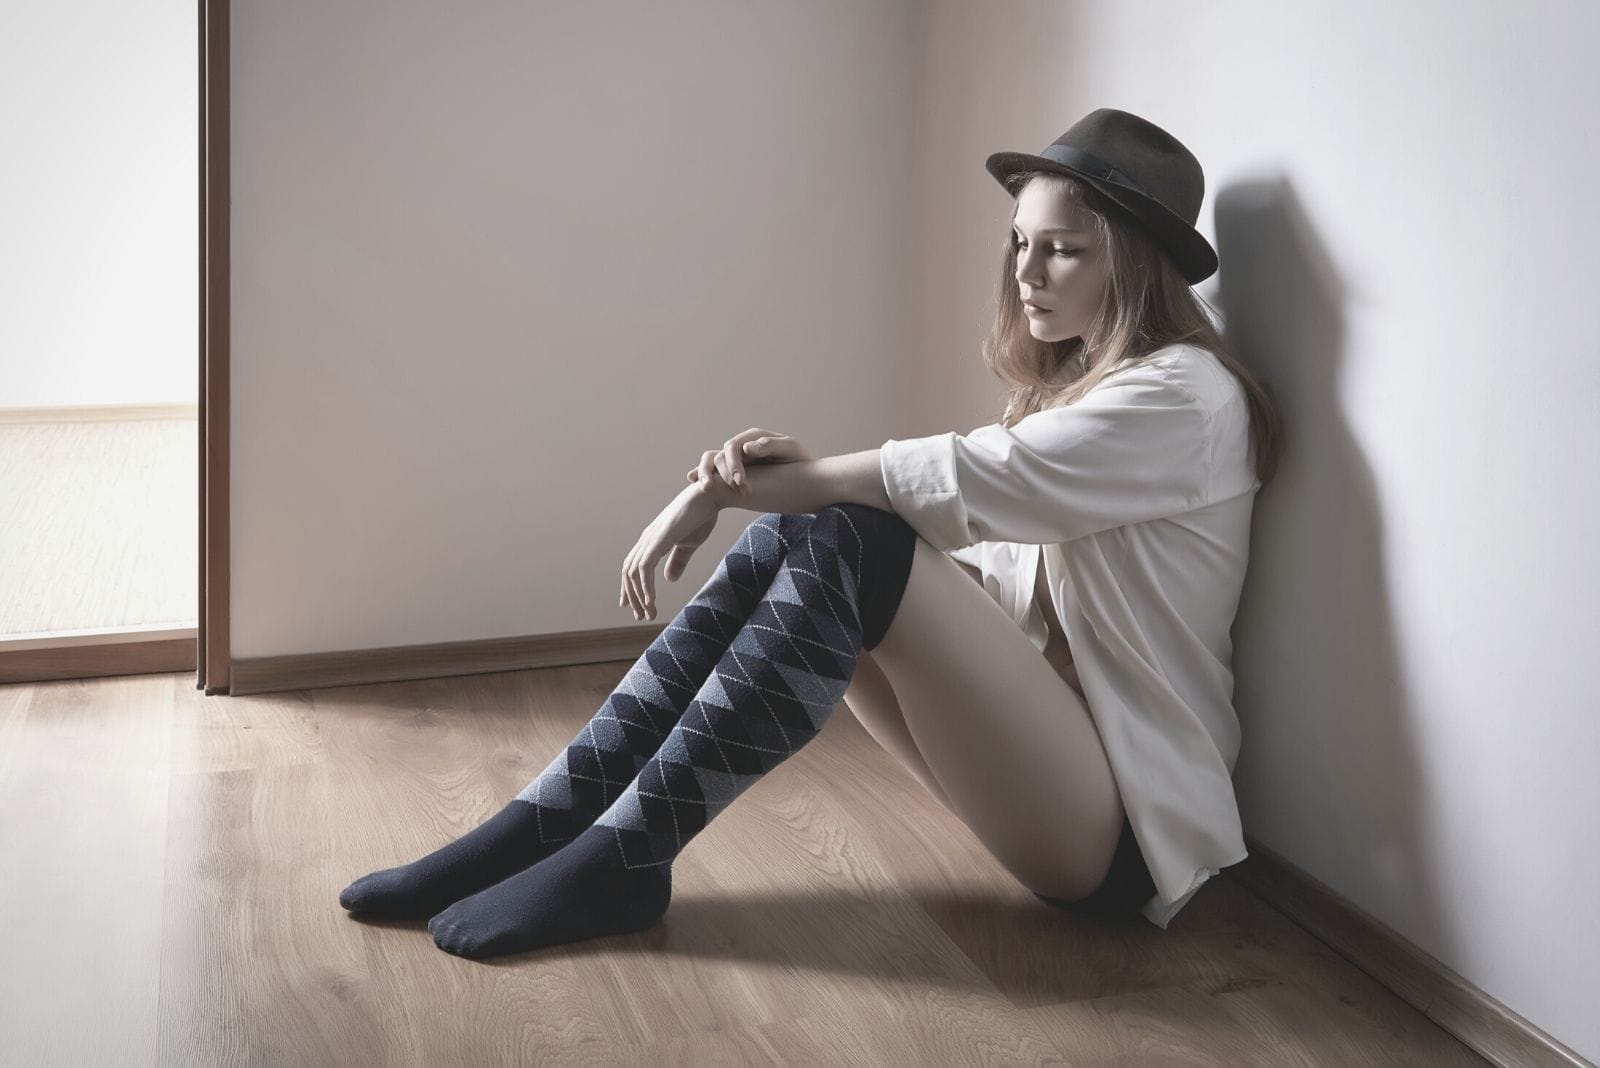 woman with a hat sitting on the floor inside the room looking sad